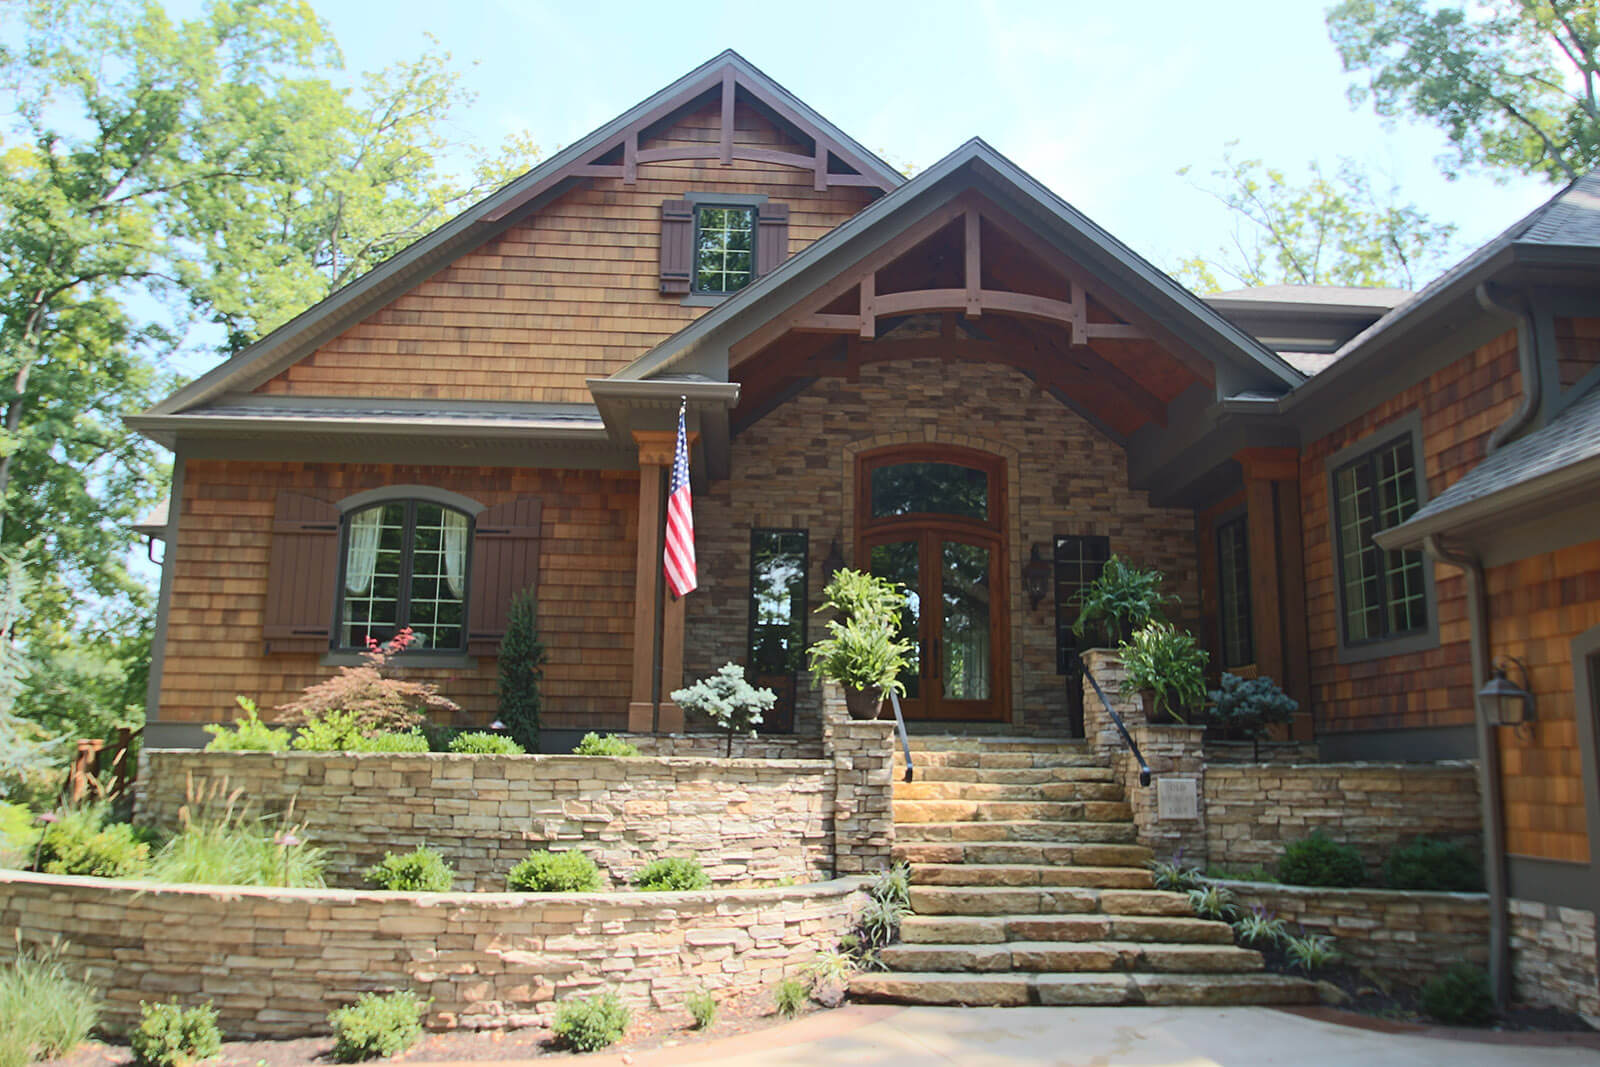 Geist Luxury Home Construction - Building Lake House